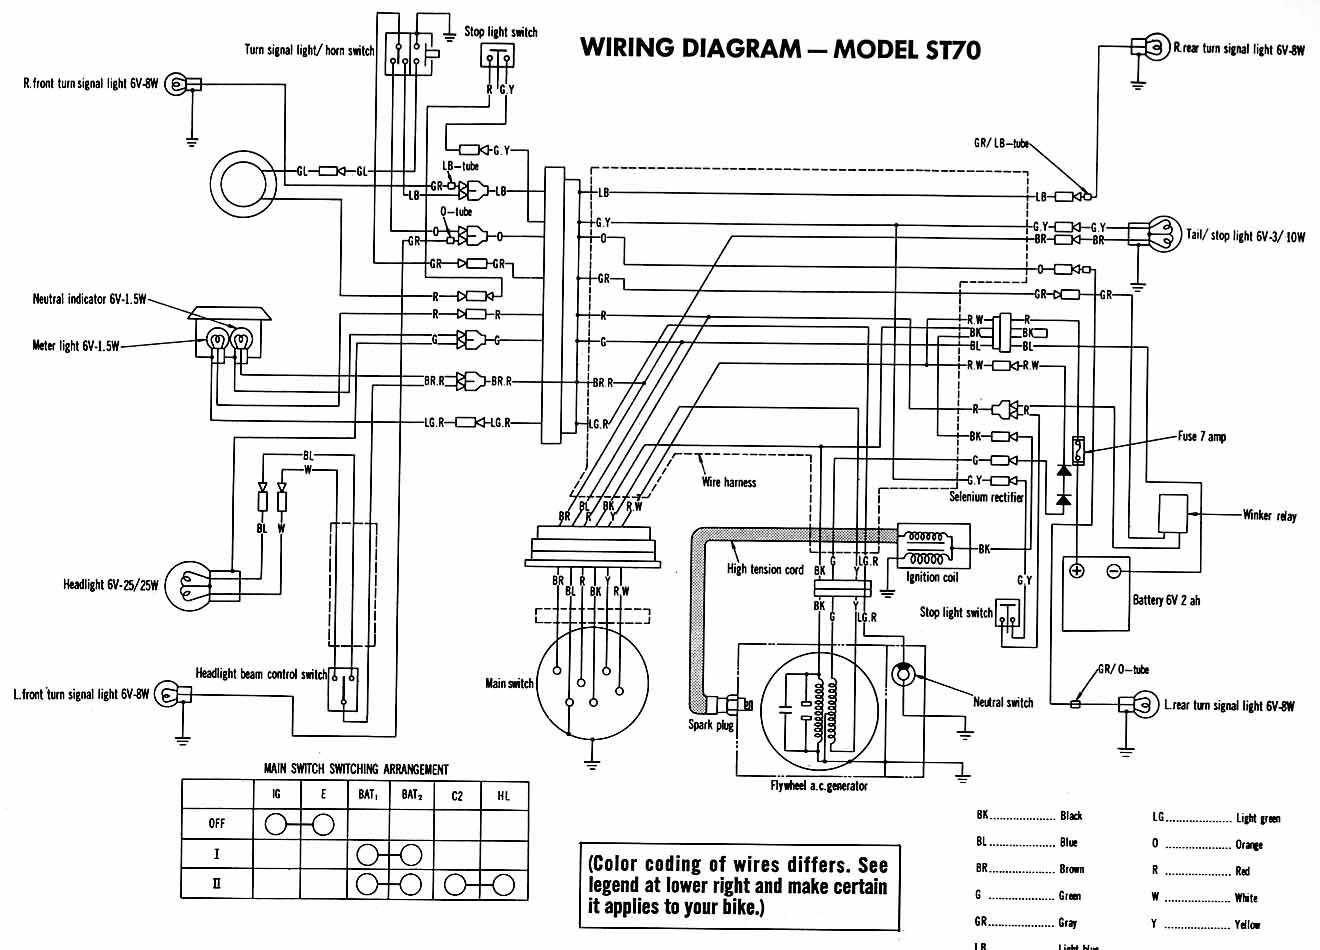 Need Vacuum Line Diagram Of The Egr Valve 96 Nissan Quest Fixya Inside 2000 Mitsubishi Eclipse Vacuum Diagram in addition TA9s 12821 likewise Ford Focus 2 0 Zetec Engine Parts Diagram besides Honda Crv 2004 Thermostat Location as well T19231499 Location pcv valve 99 4cyl cougar. on 2001 ford escape pcv valve location